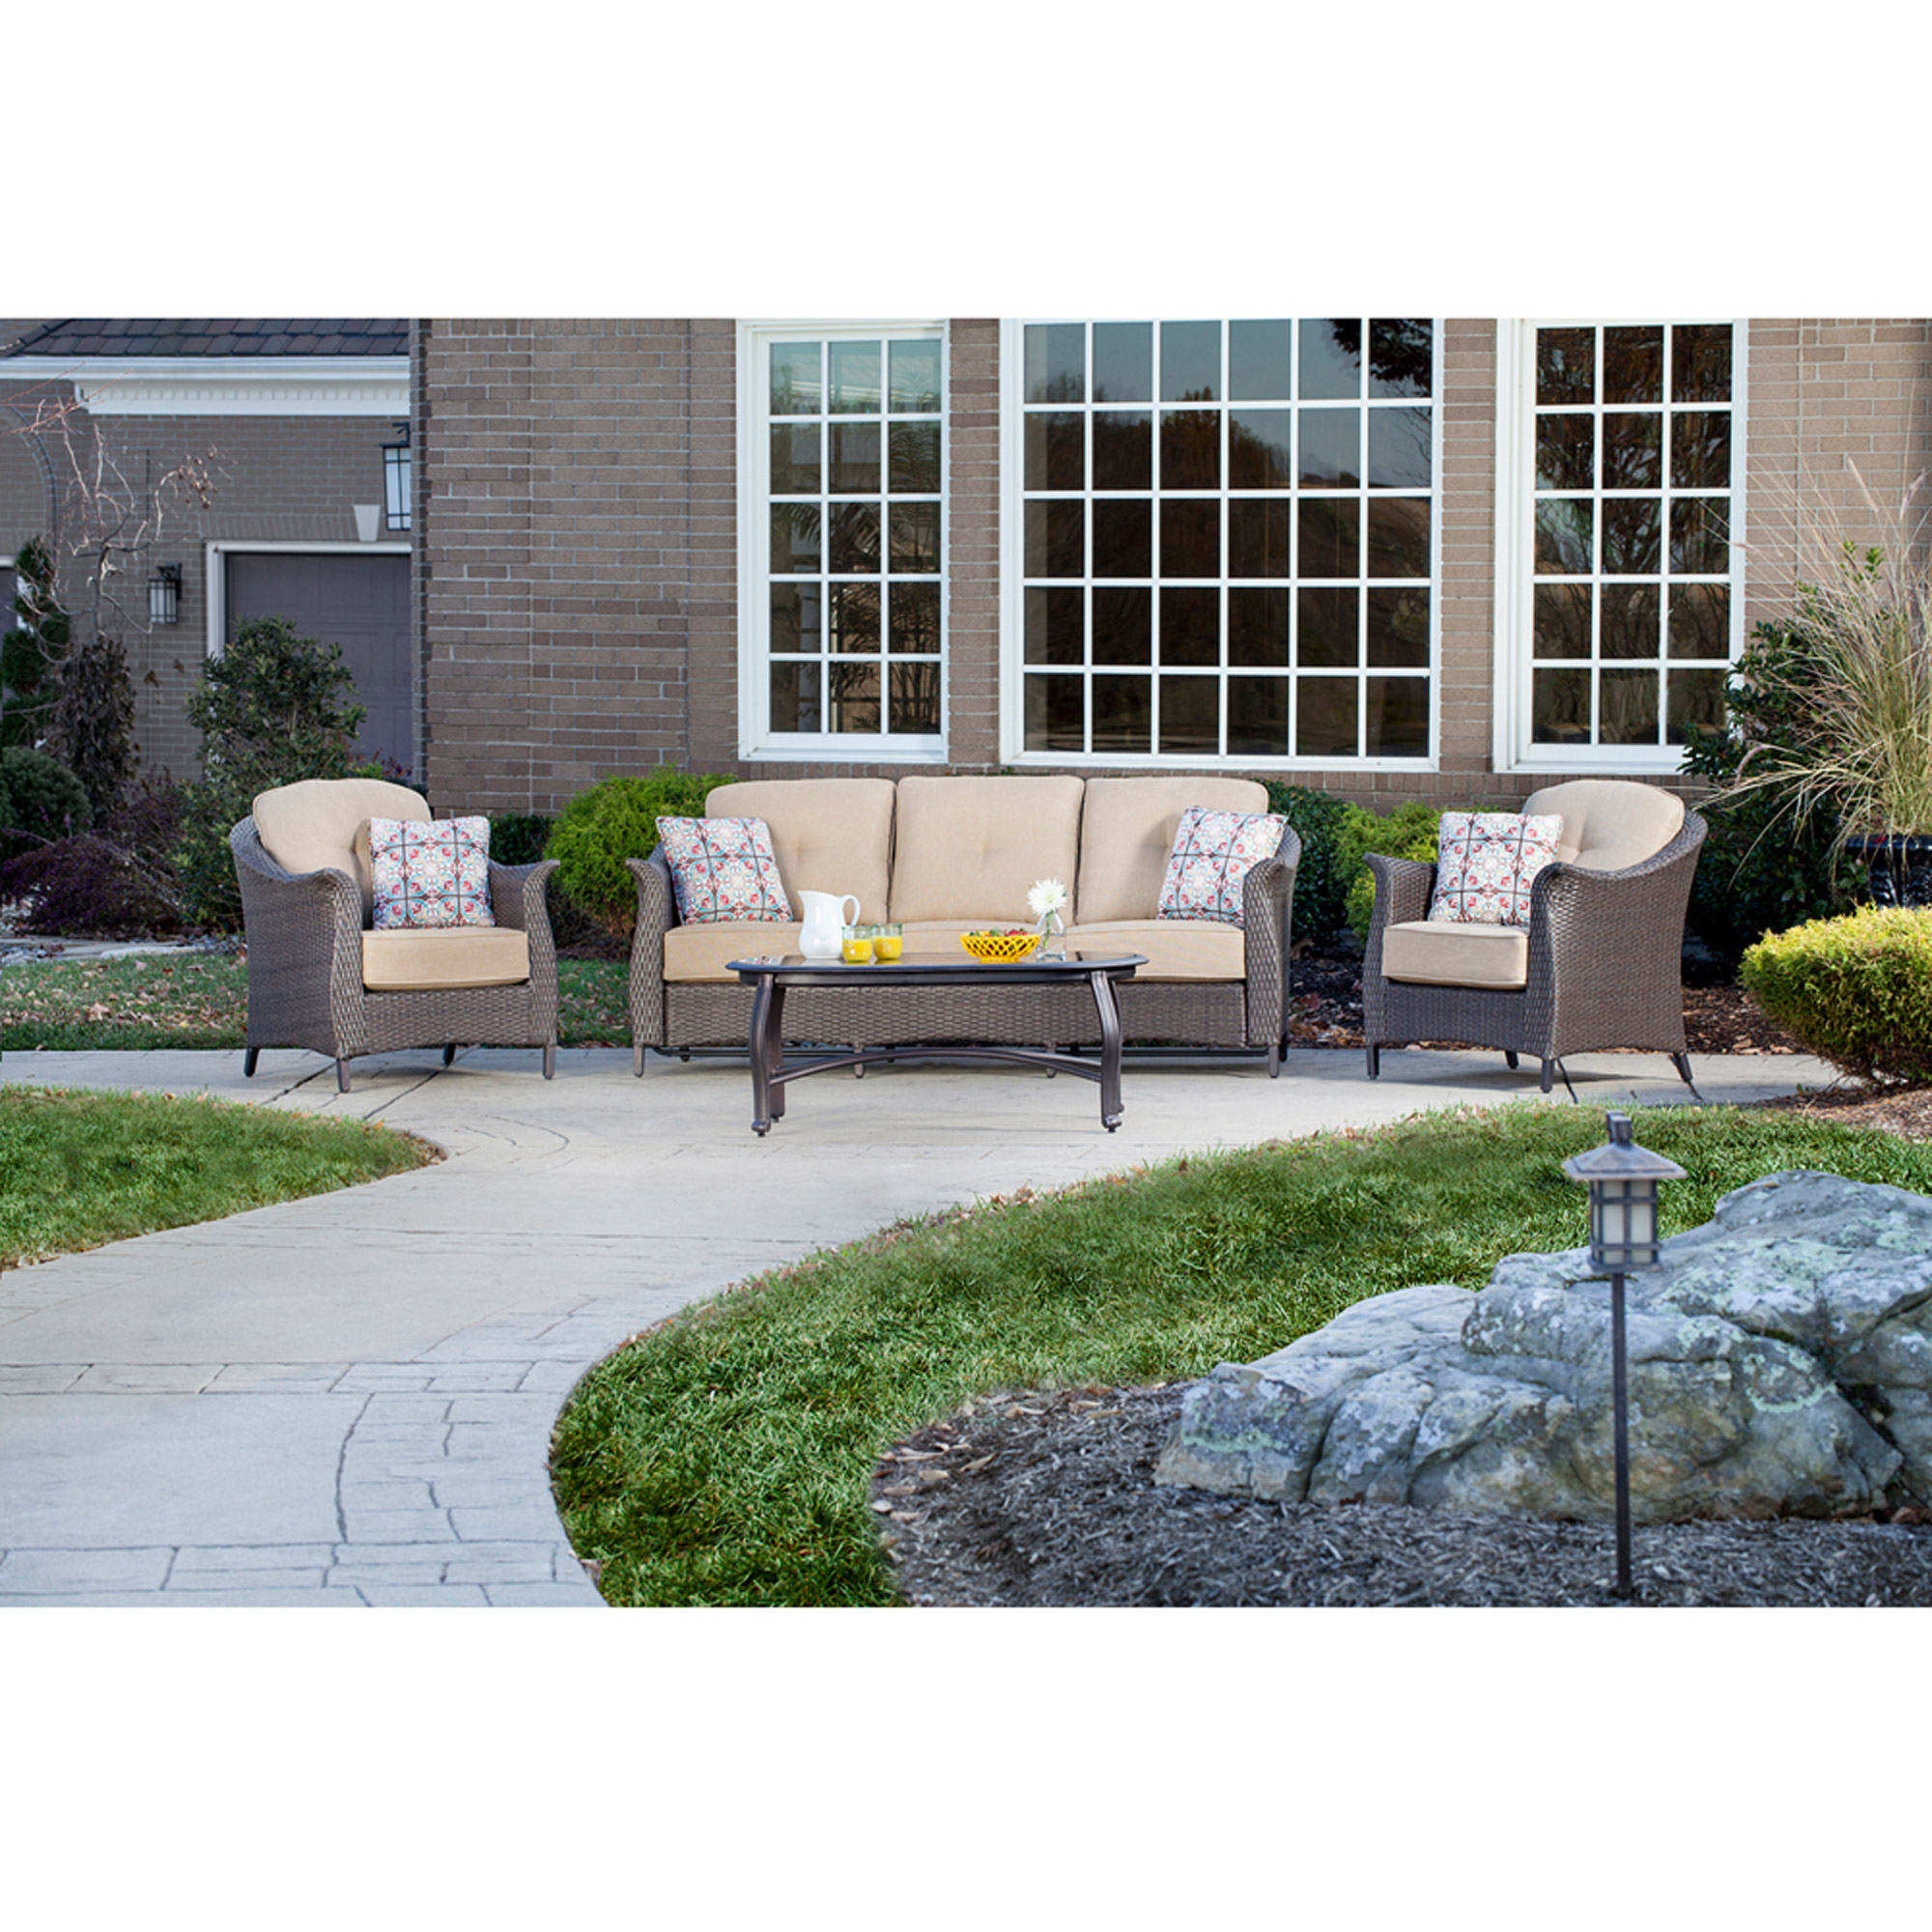 Hanover Gramercy 4-Piece Outdoor Wicker Patio Set by Hanover Outdoor Furniture